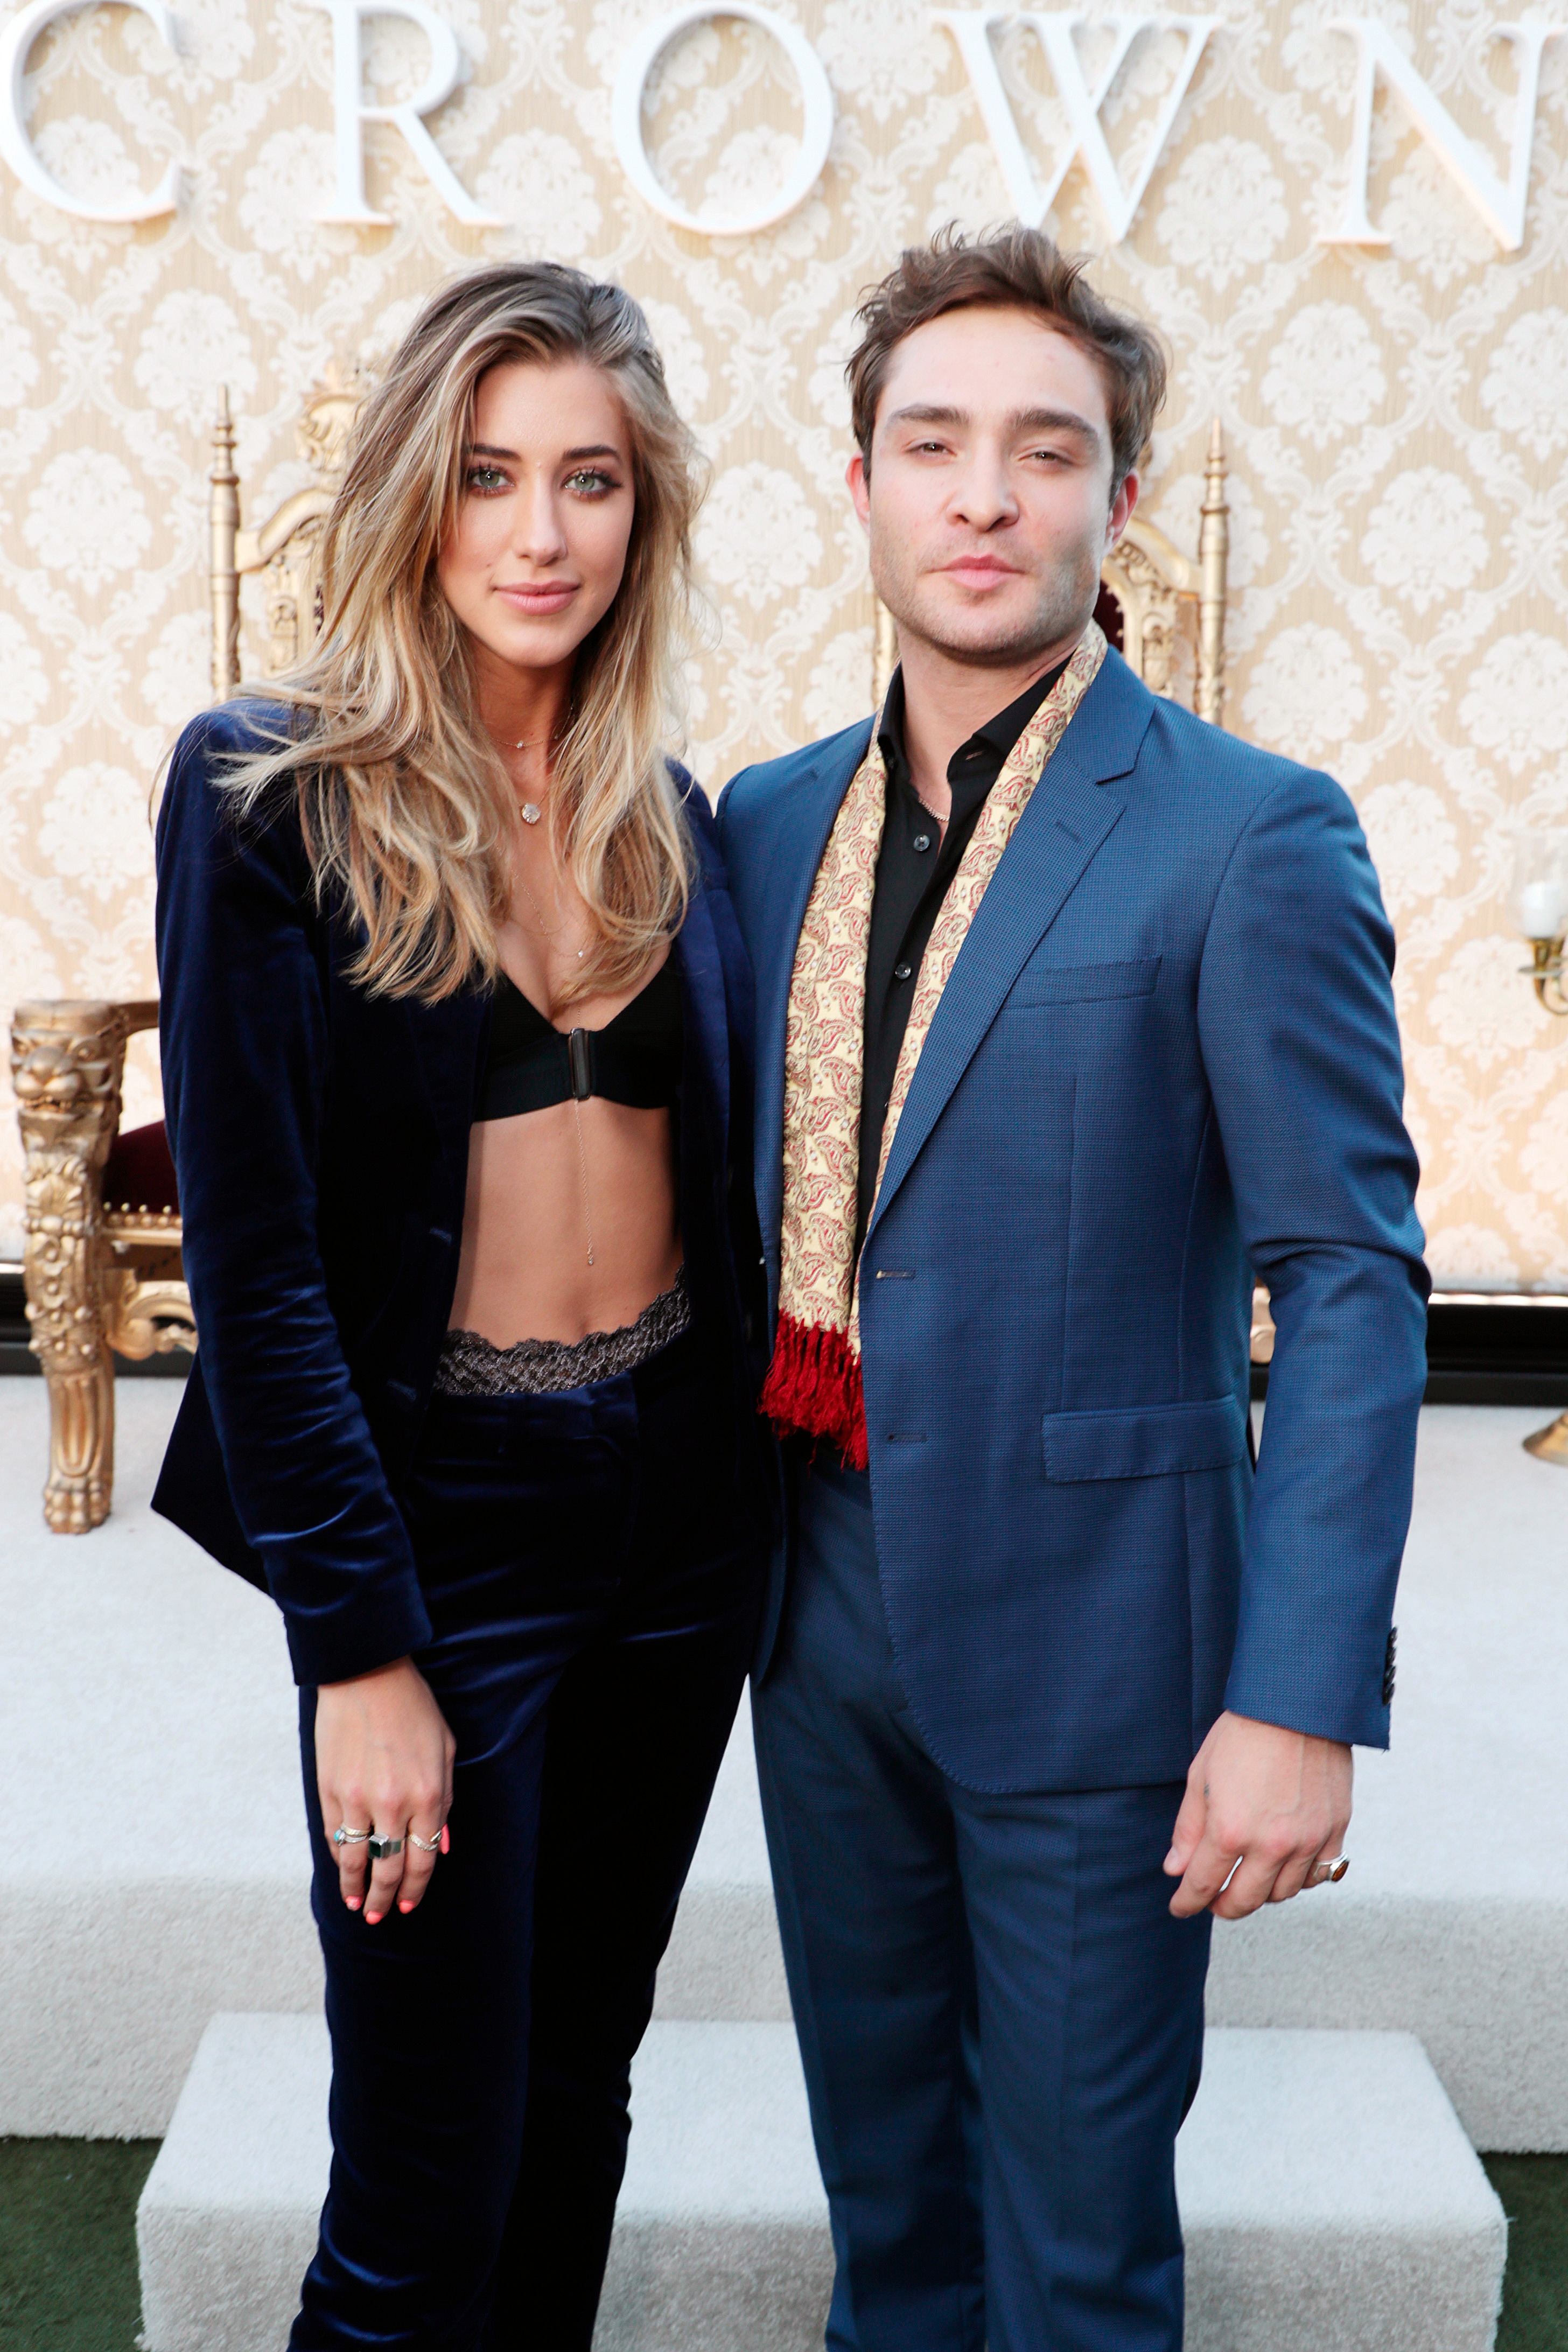 """Jessica Serfaty and Ed Westwick attend """"The Crown"""" celebration & Q&A at The London and WGA Theater in Los Angeles on Aug. 10, 2017."""